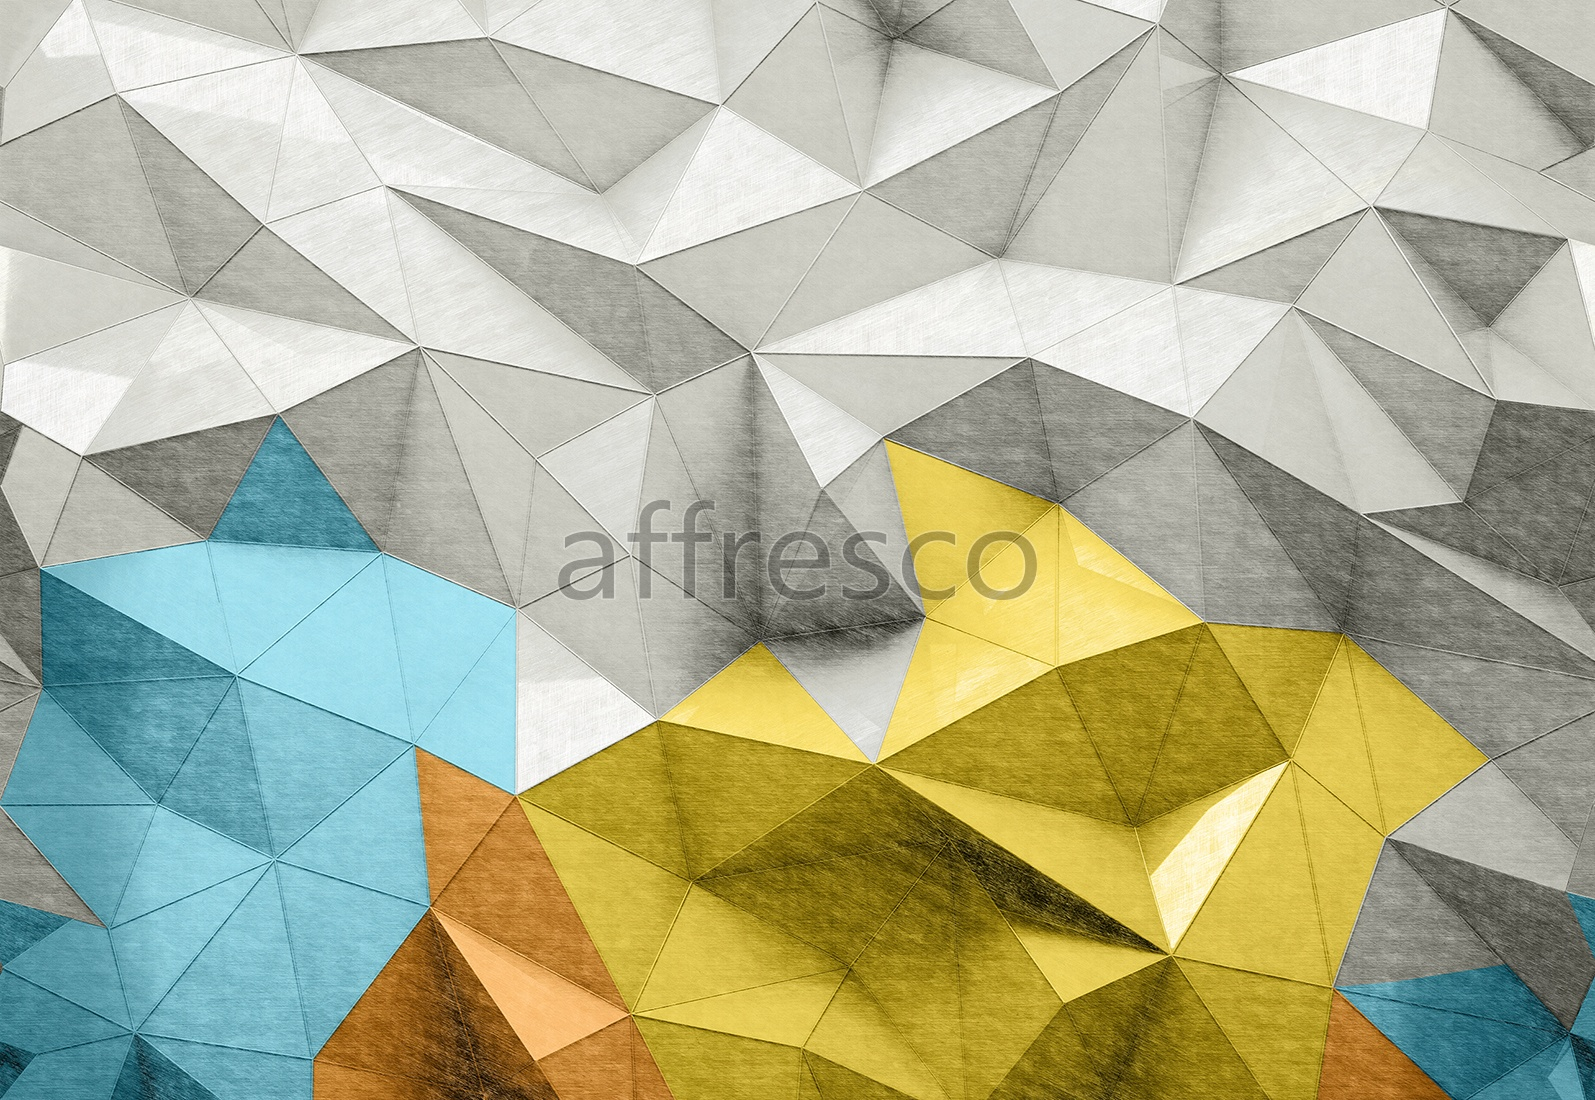 ID136376 | Geometry |  | Affresco Factory